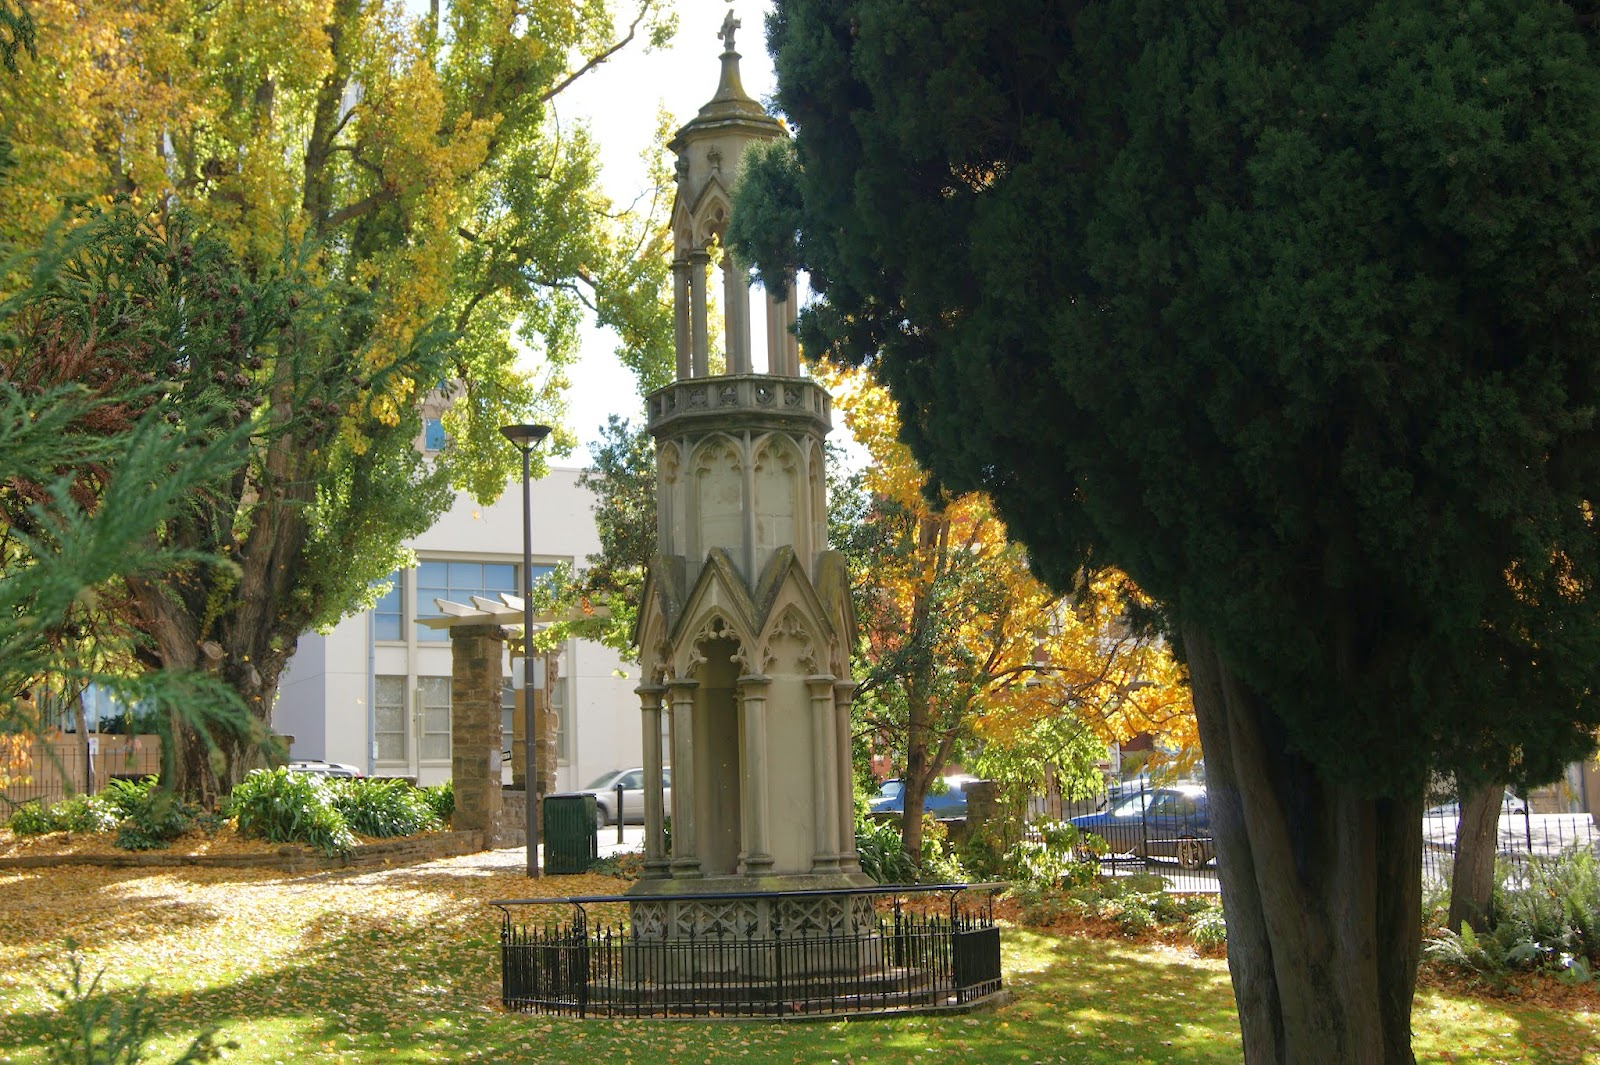 Eardley-Wilmot Tomb, St. David's Park, Hobart